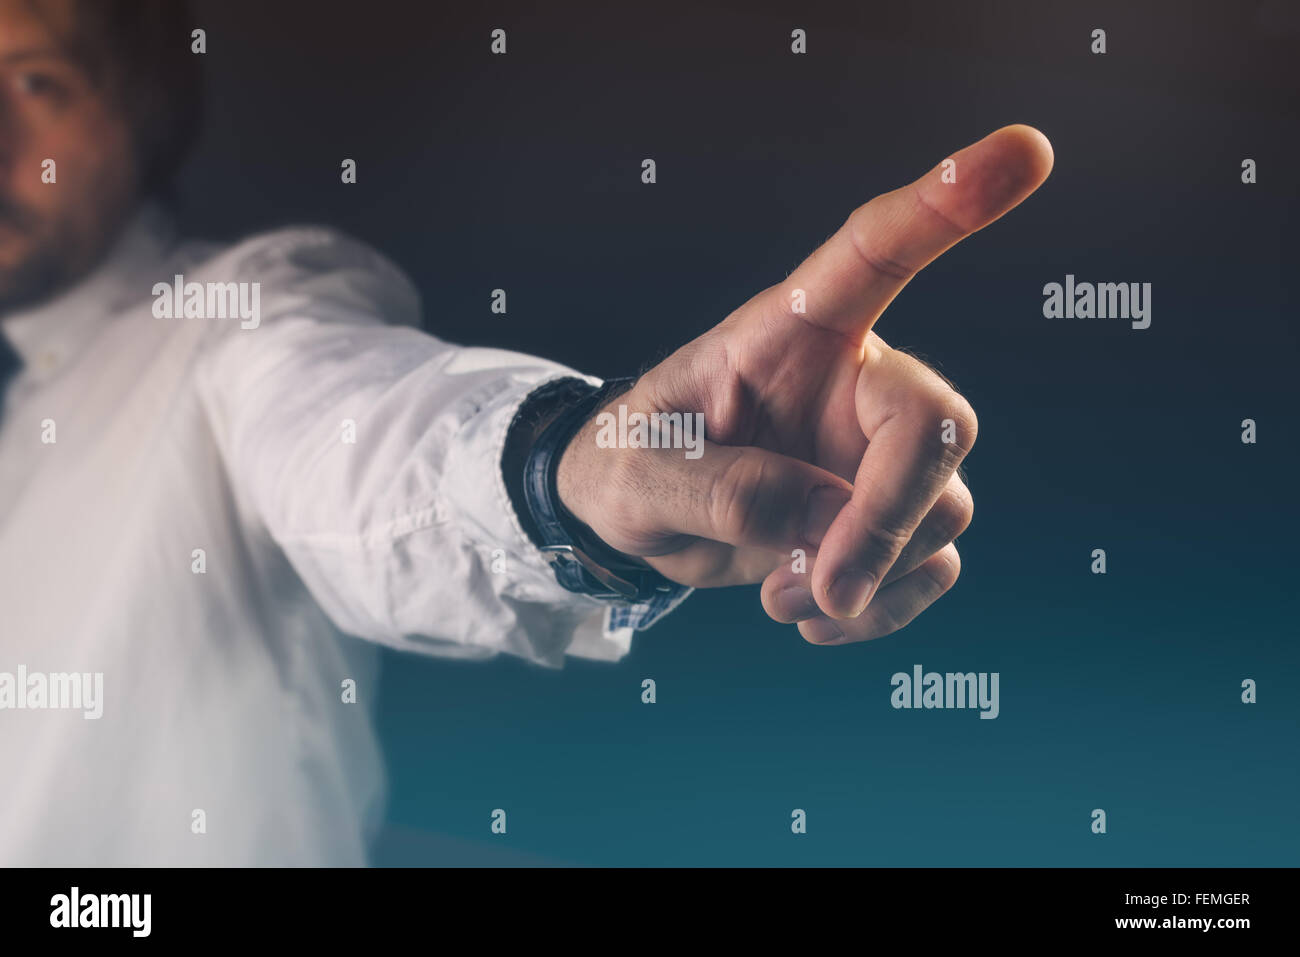 You are fired concept, boss gesturing way out hand sign with index finger - Stock Image